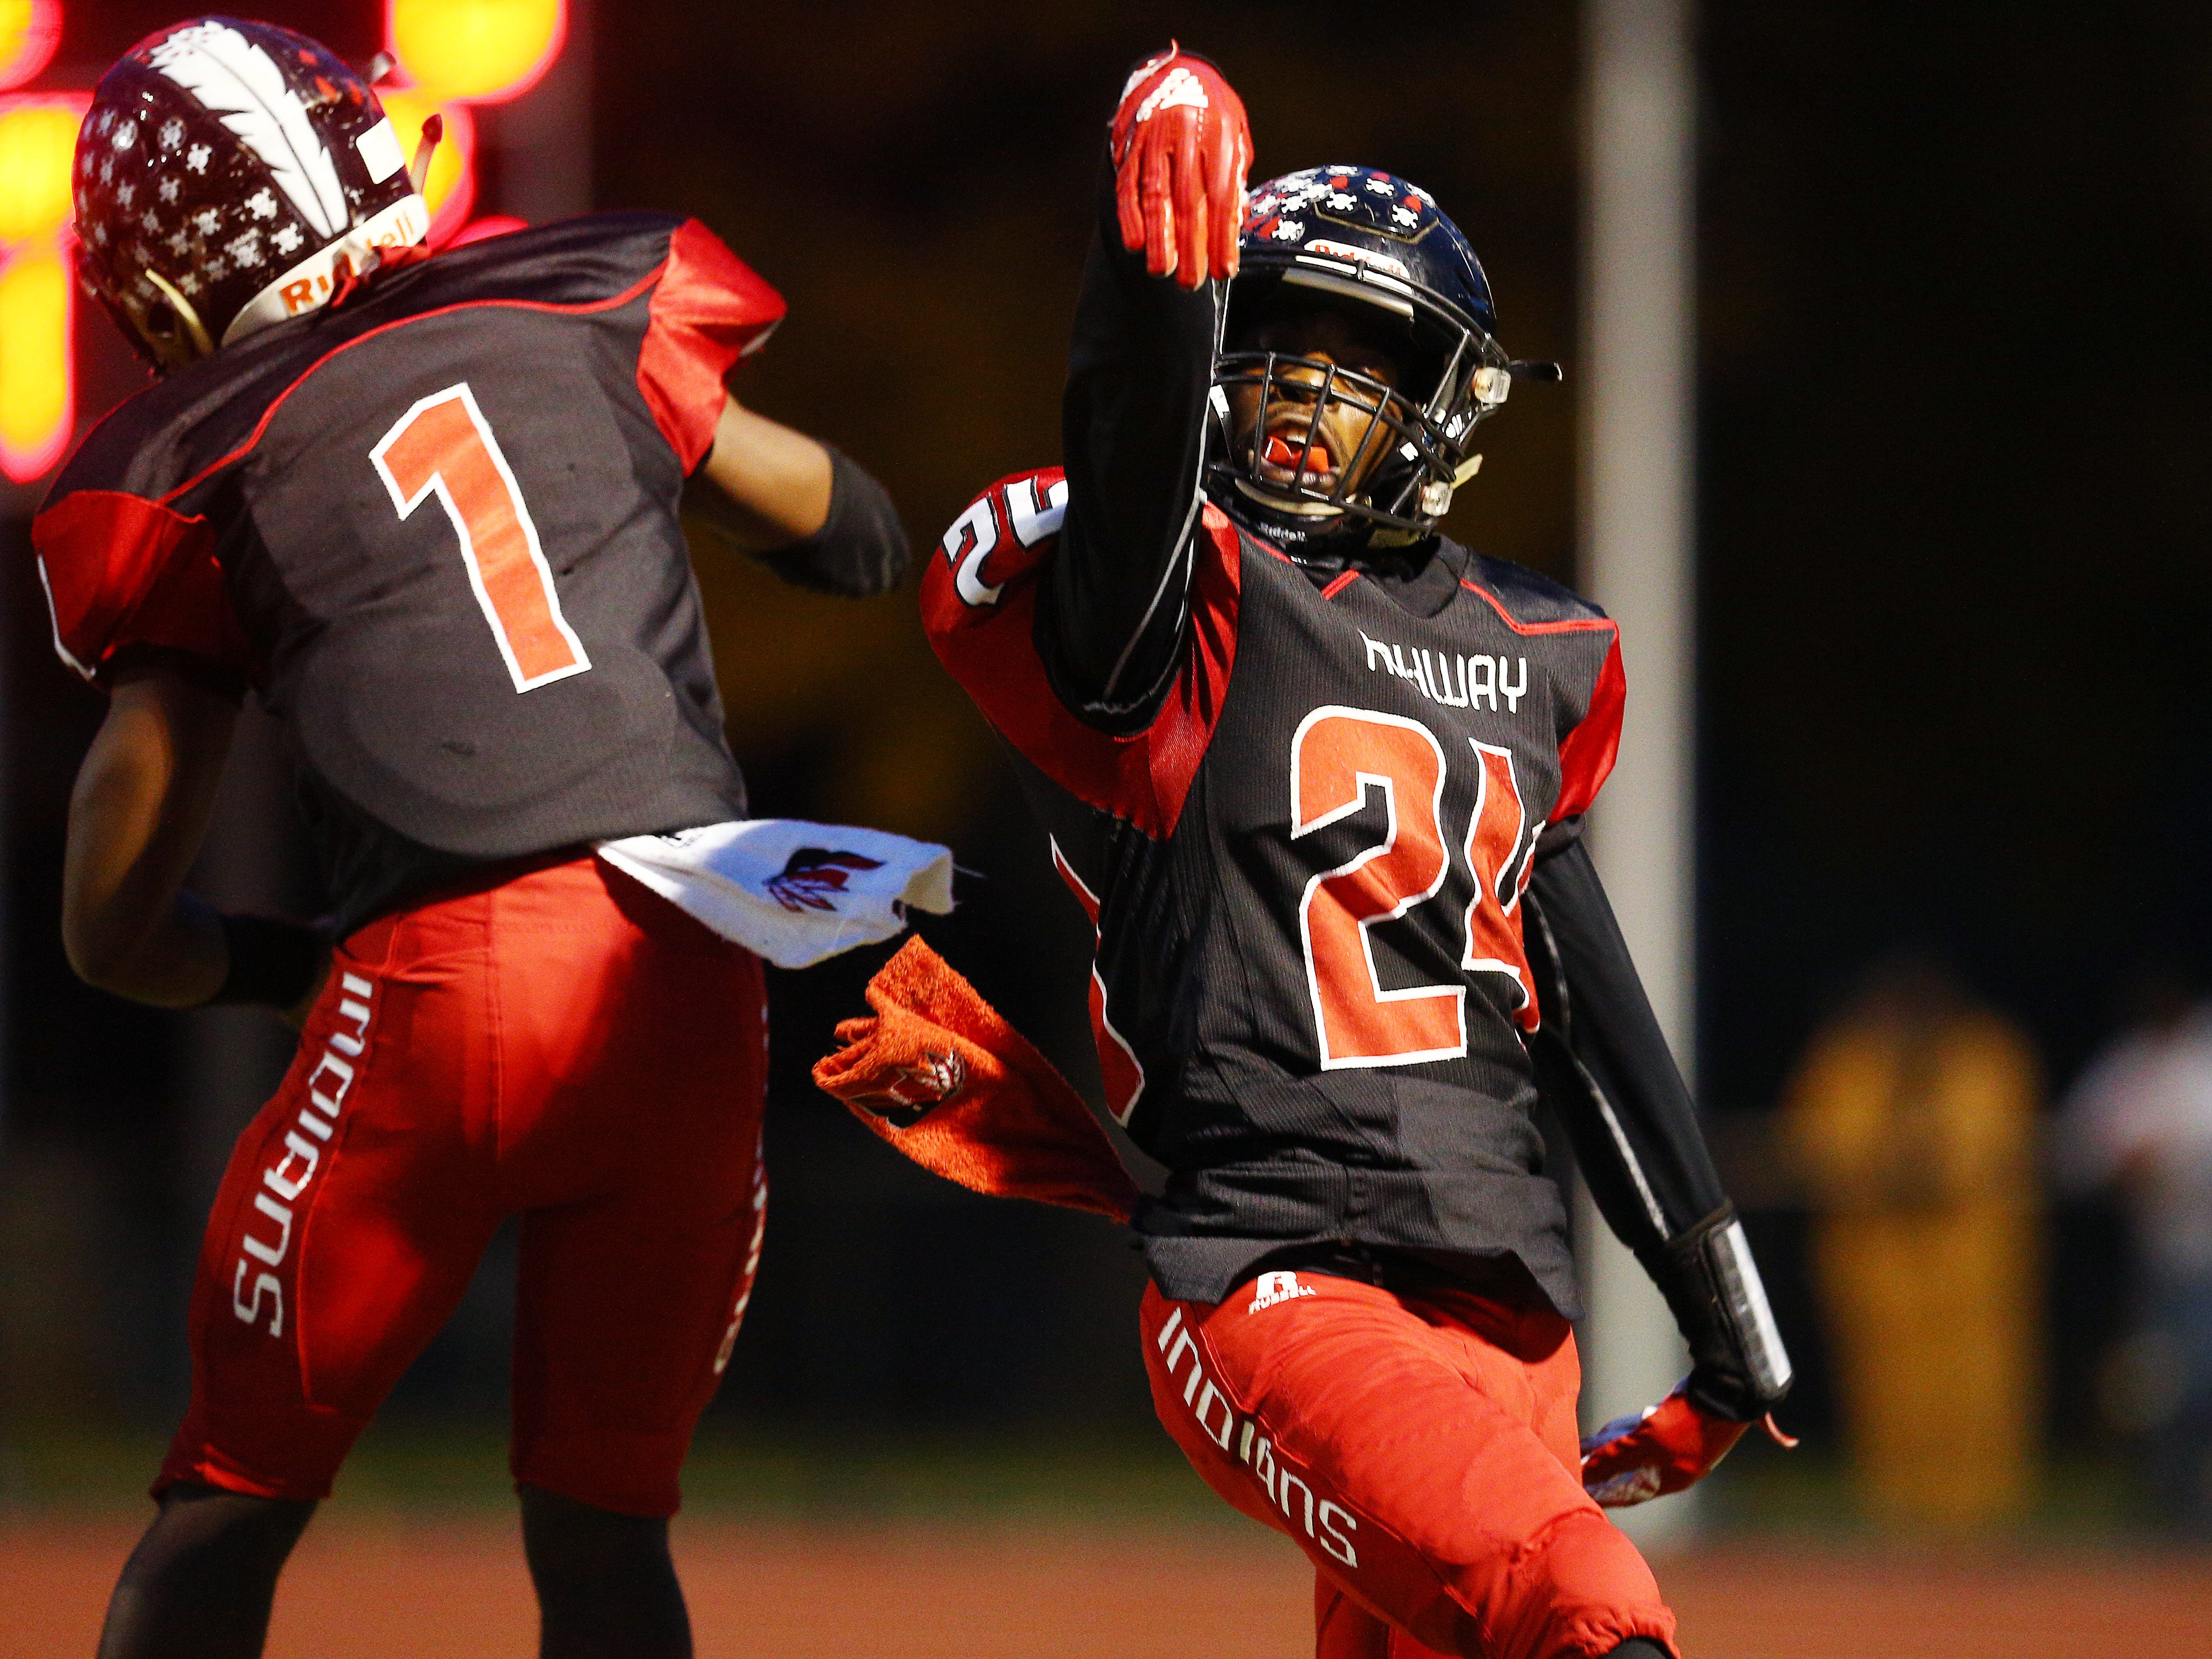 Rahway's Zi'on Pendleton celebrates his touchdown vs. Parsippany Hills during their NJSIAA North 2 Group III football quarterfinal at Rahway River Park. November 2, 2018, Rahway, NJ